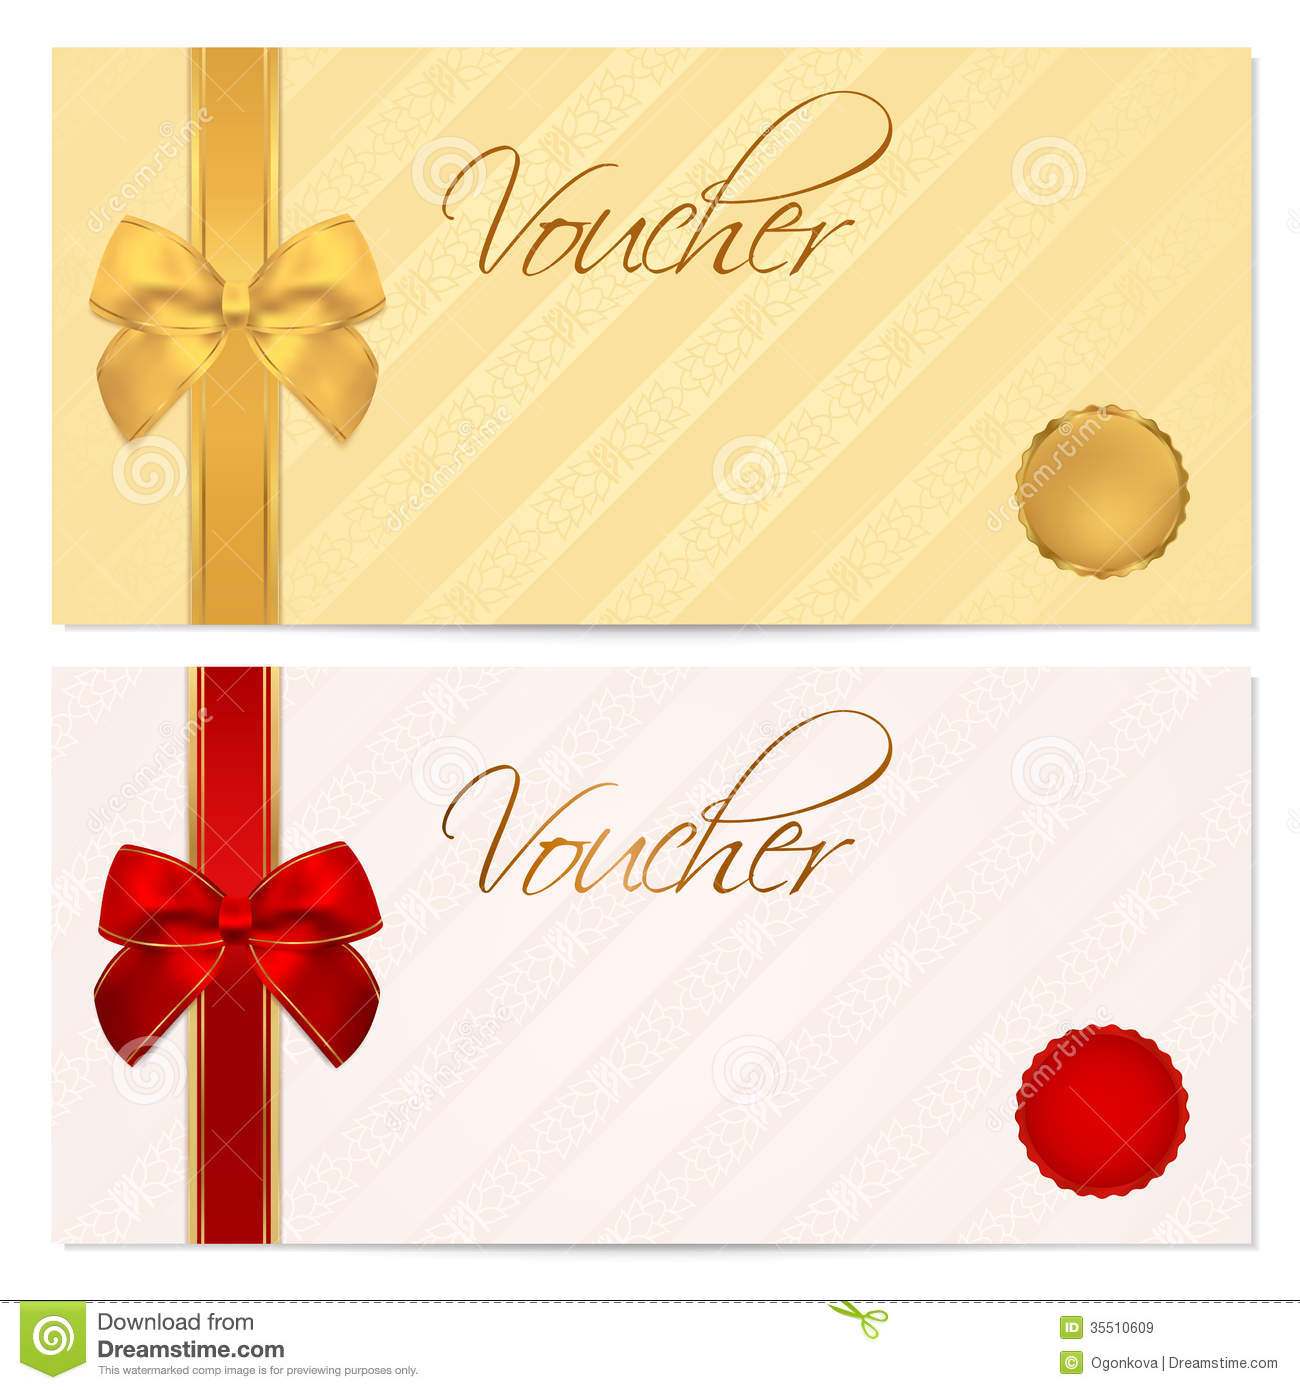 Christmas gift coupon template free